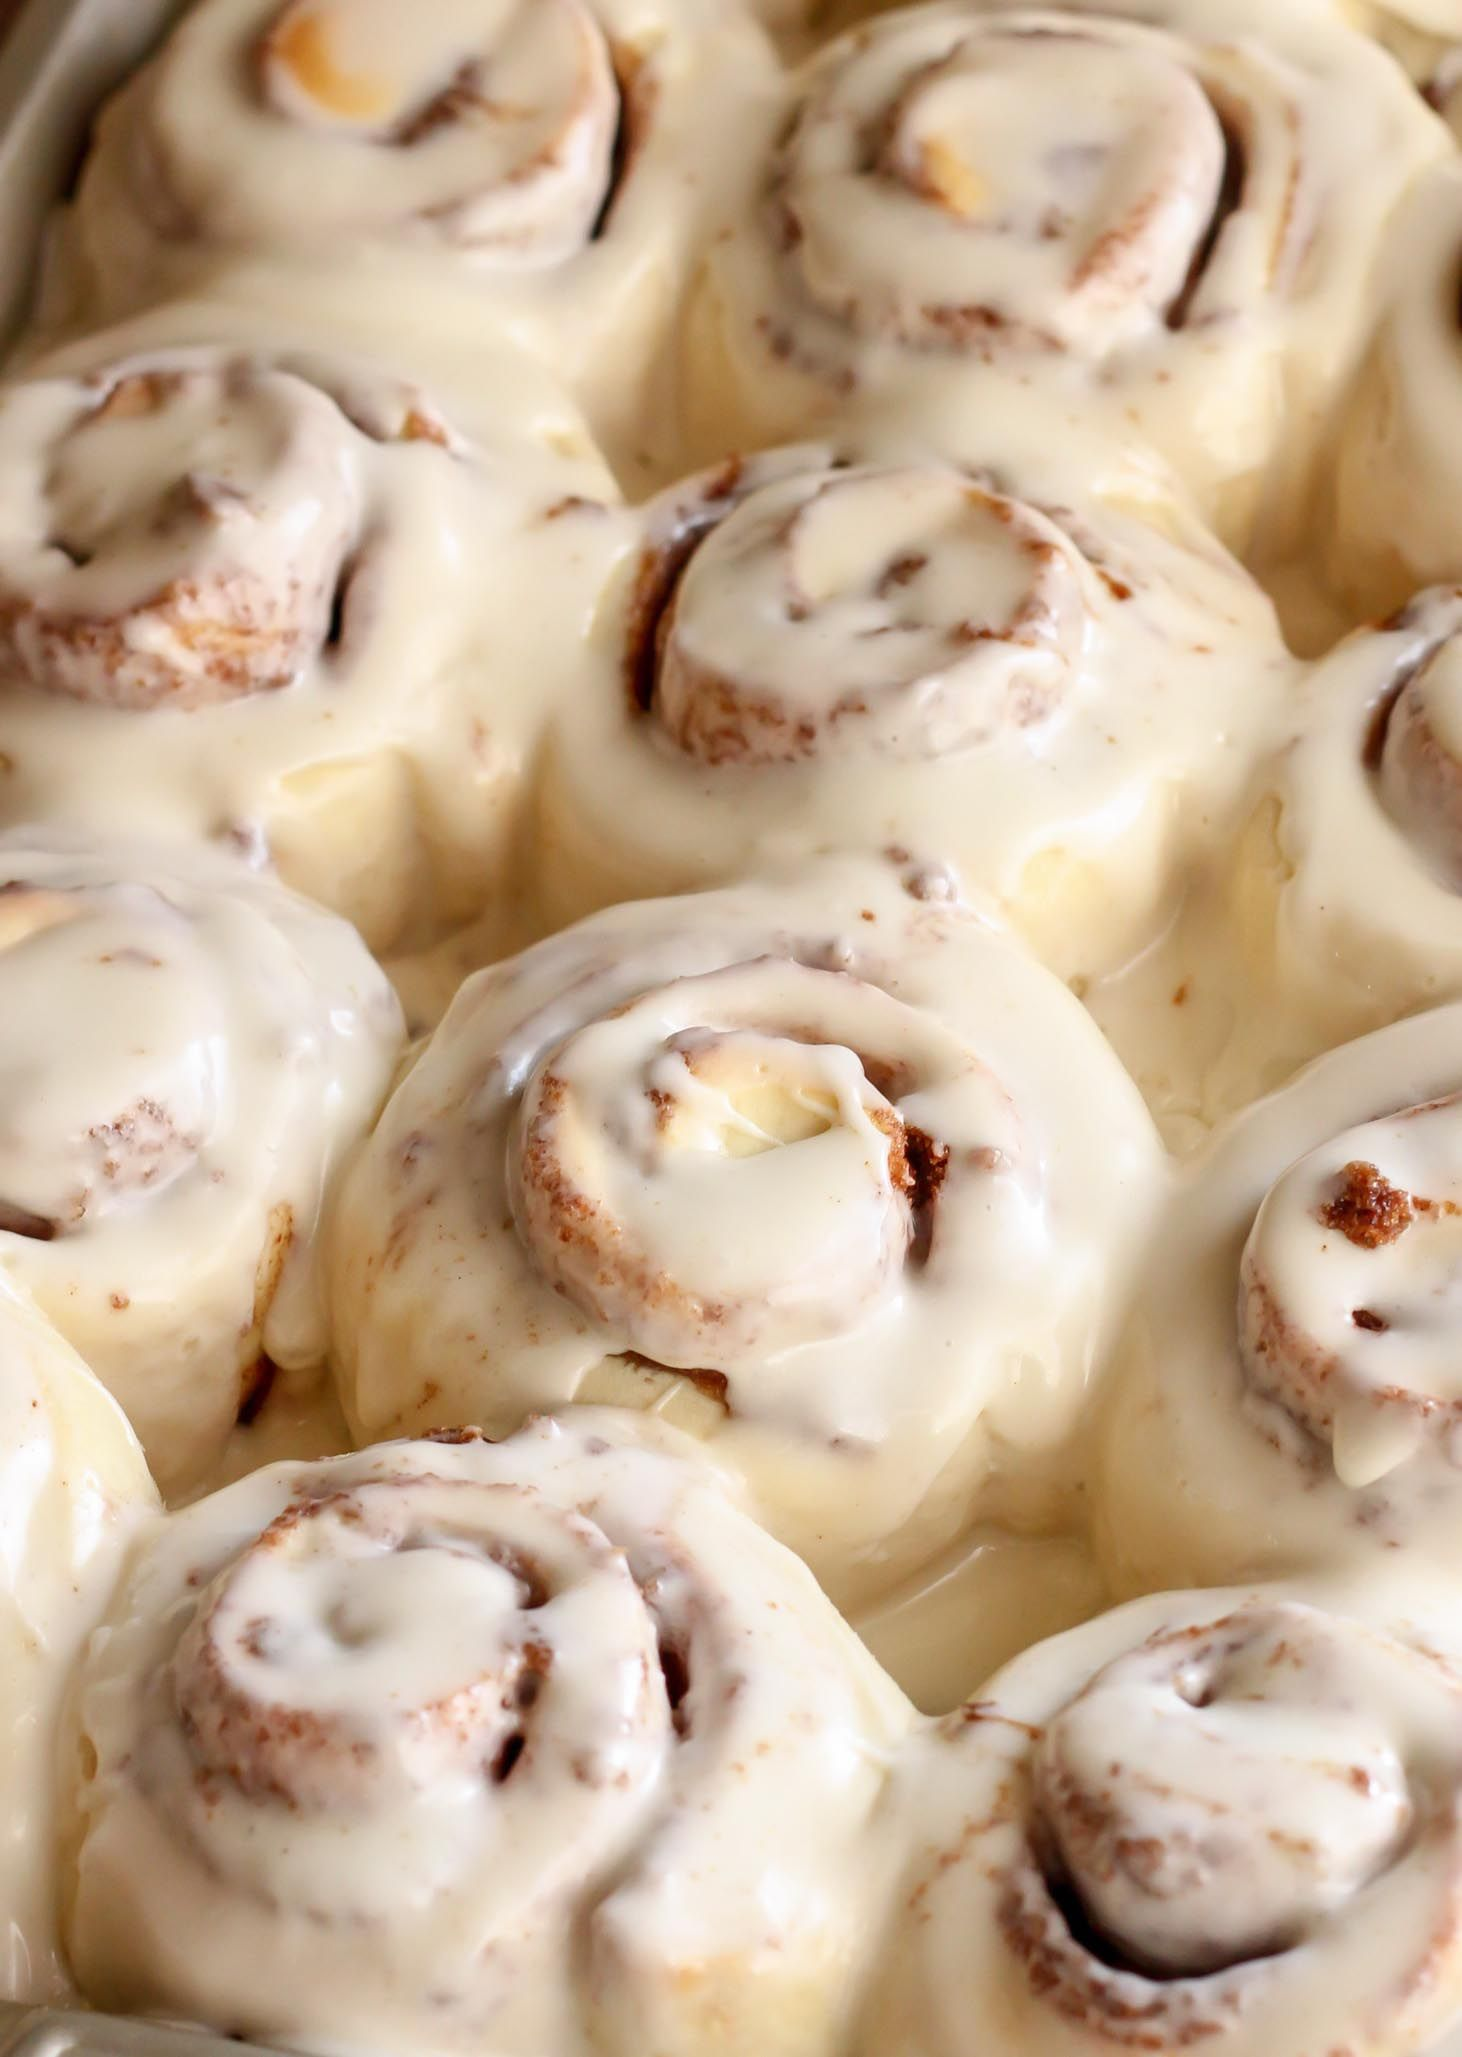 Easy Cinnamon Rolls is part of Cinnamon rolls recipe - Delicious One Hour Cinnamon Rolls with homemade cream cheese frosting  These rolls are super soft and result in a quick, mouthwatering cinnamon treat that is delicious any morning or holiday